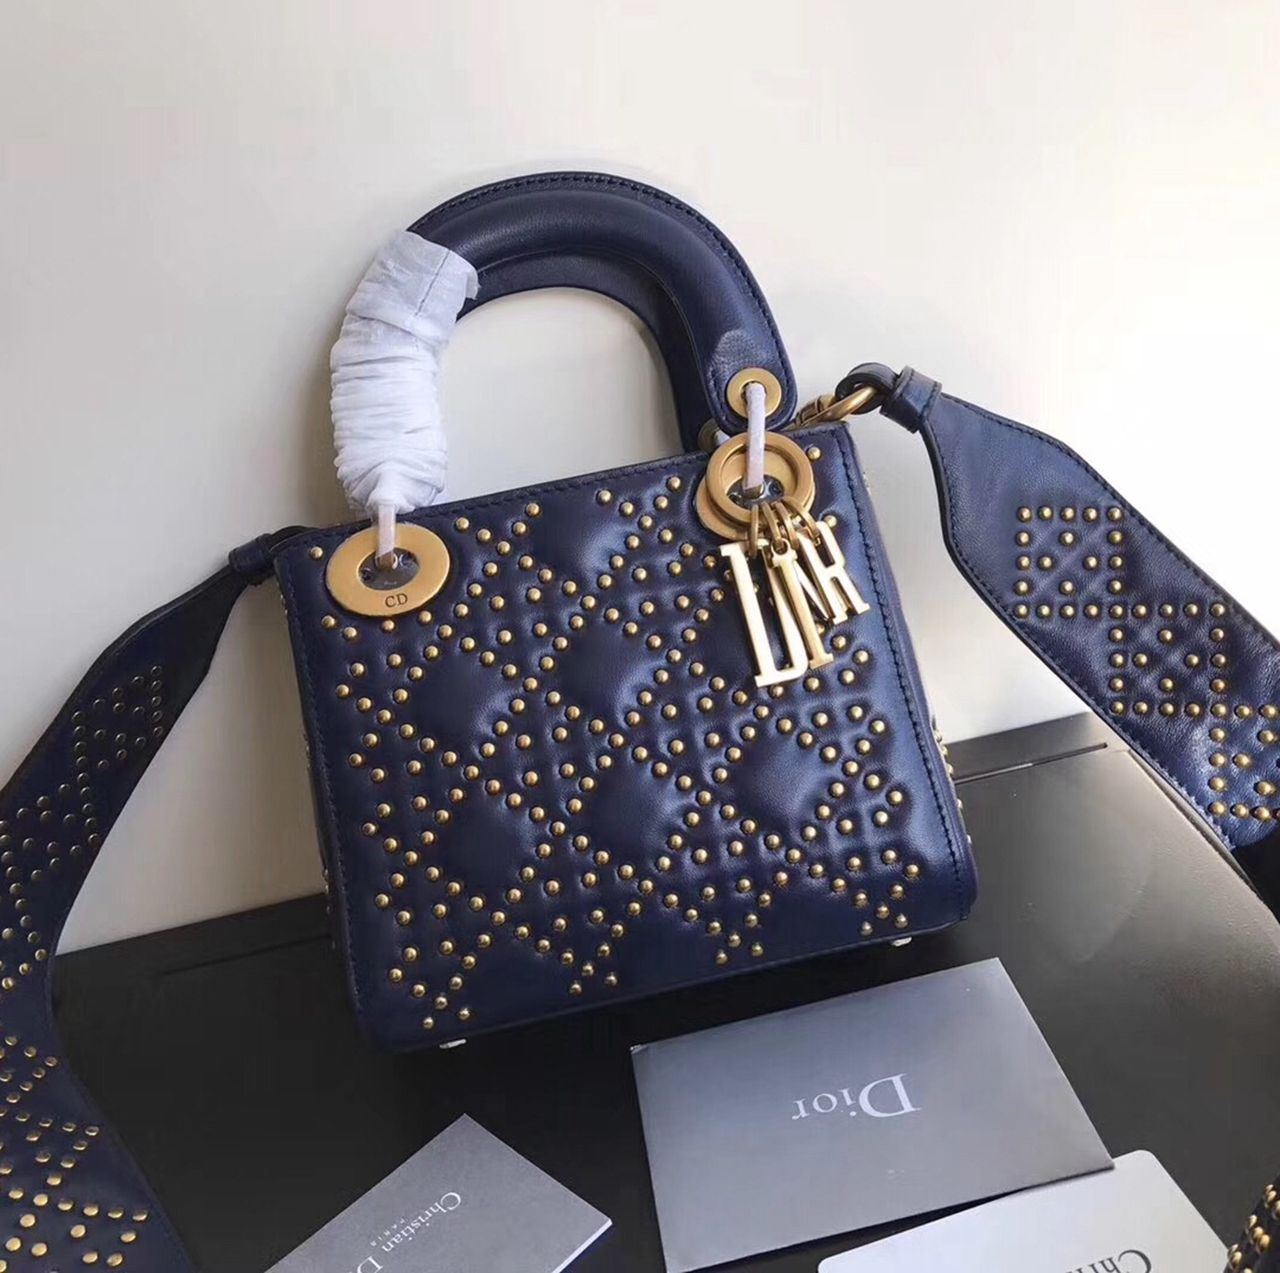 Dior Supple Lady Dior Mini Bag in Studded Lambskin Deep Blue 2017 ... be87d6d8dc22d